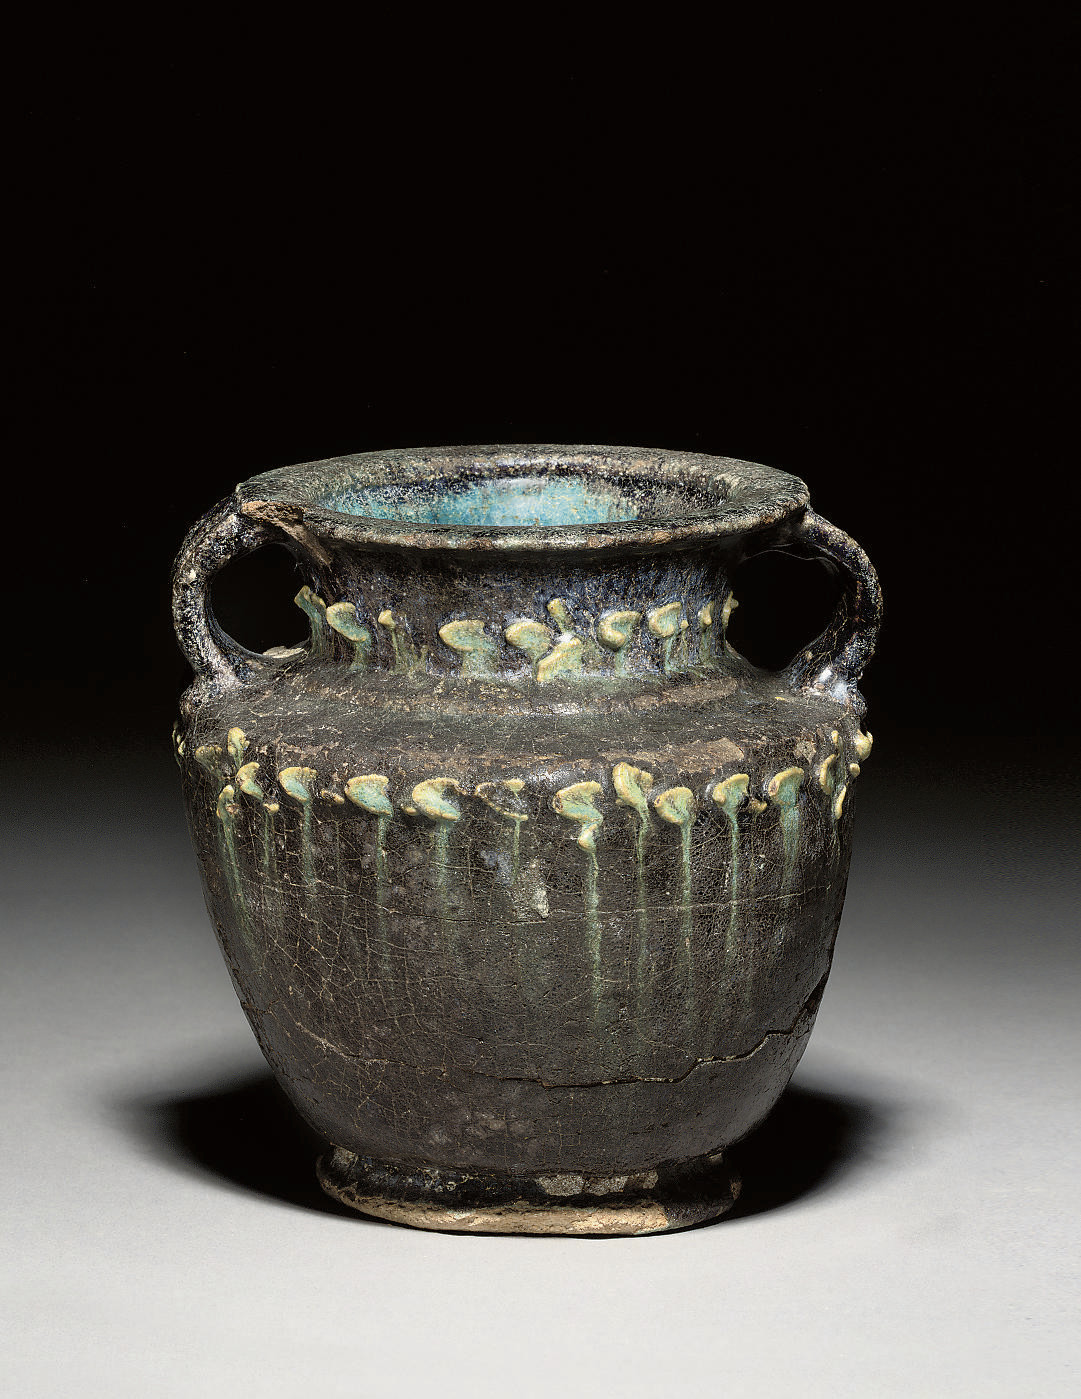 A ROMANO-EGYPTIAN FAIENCE JAR